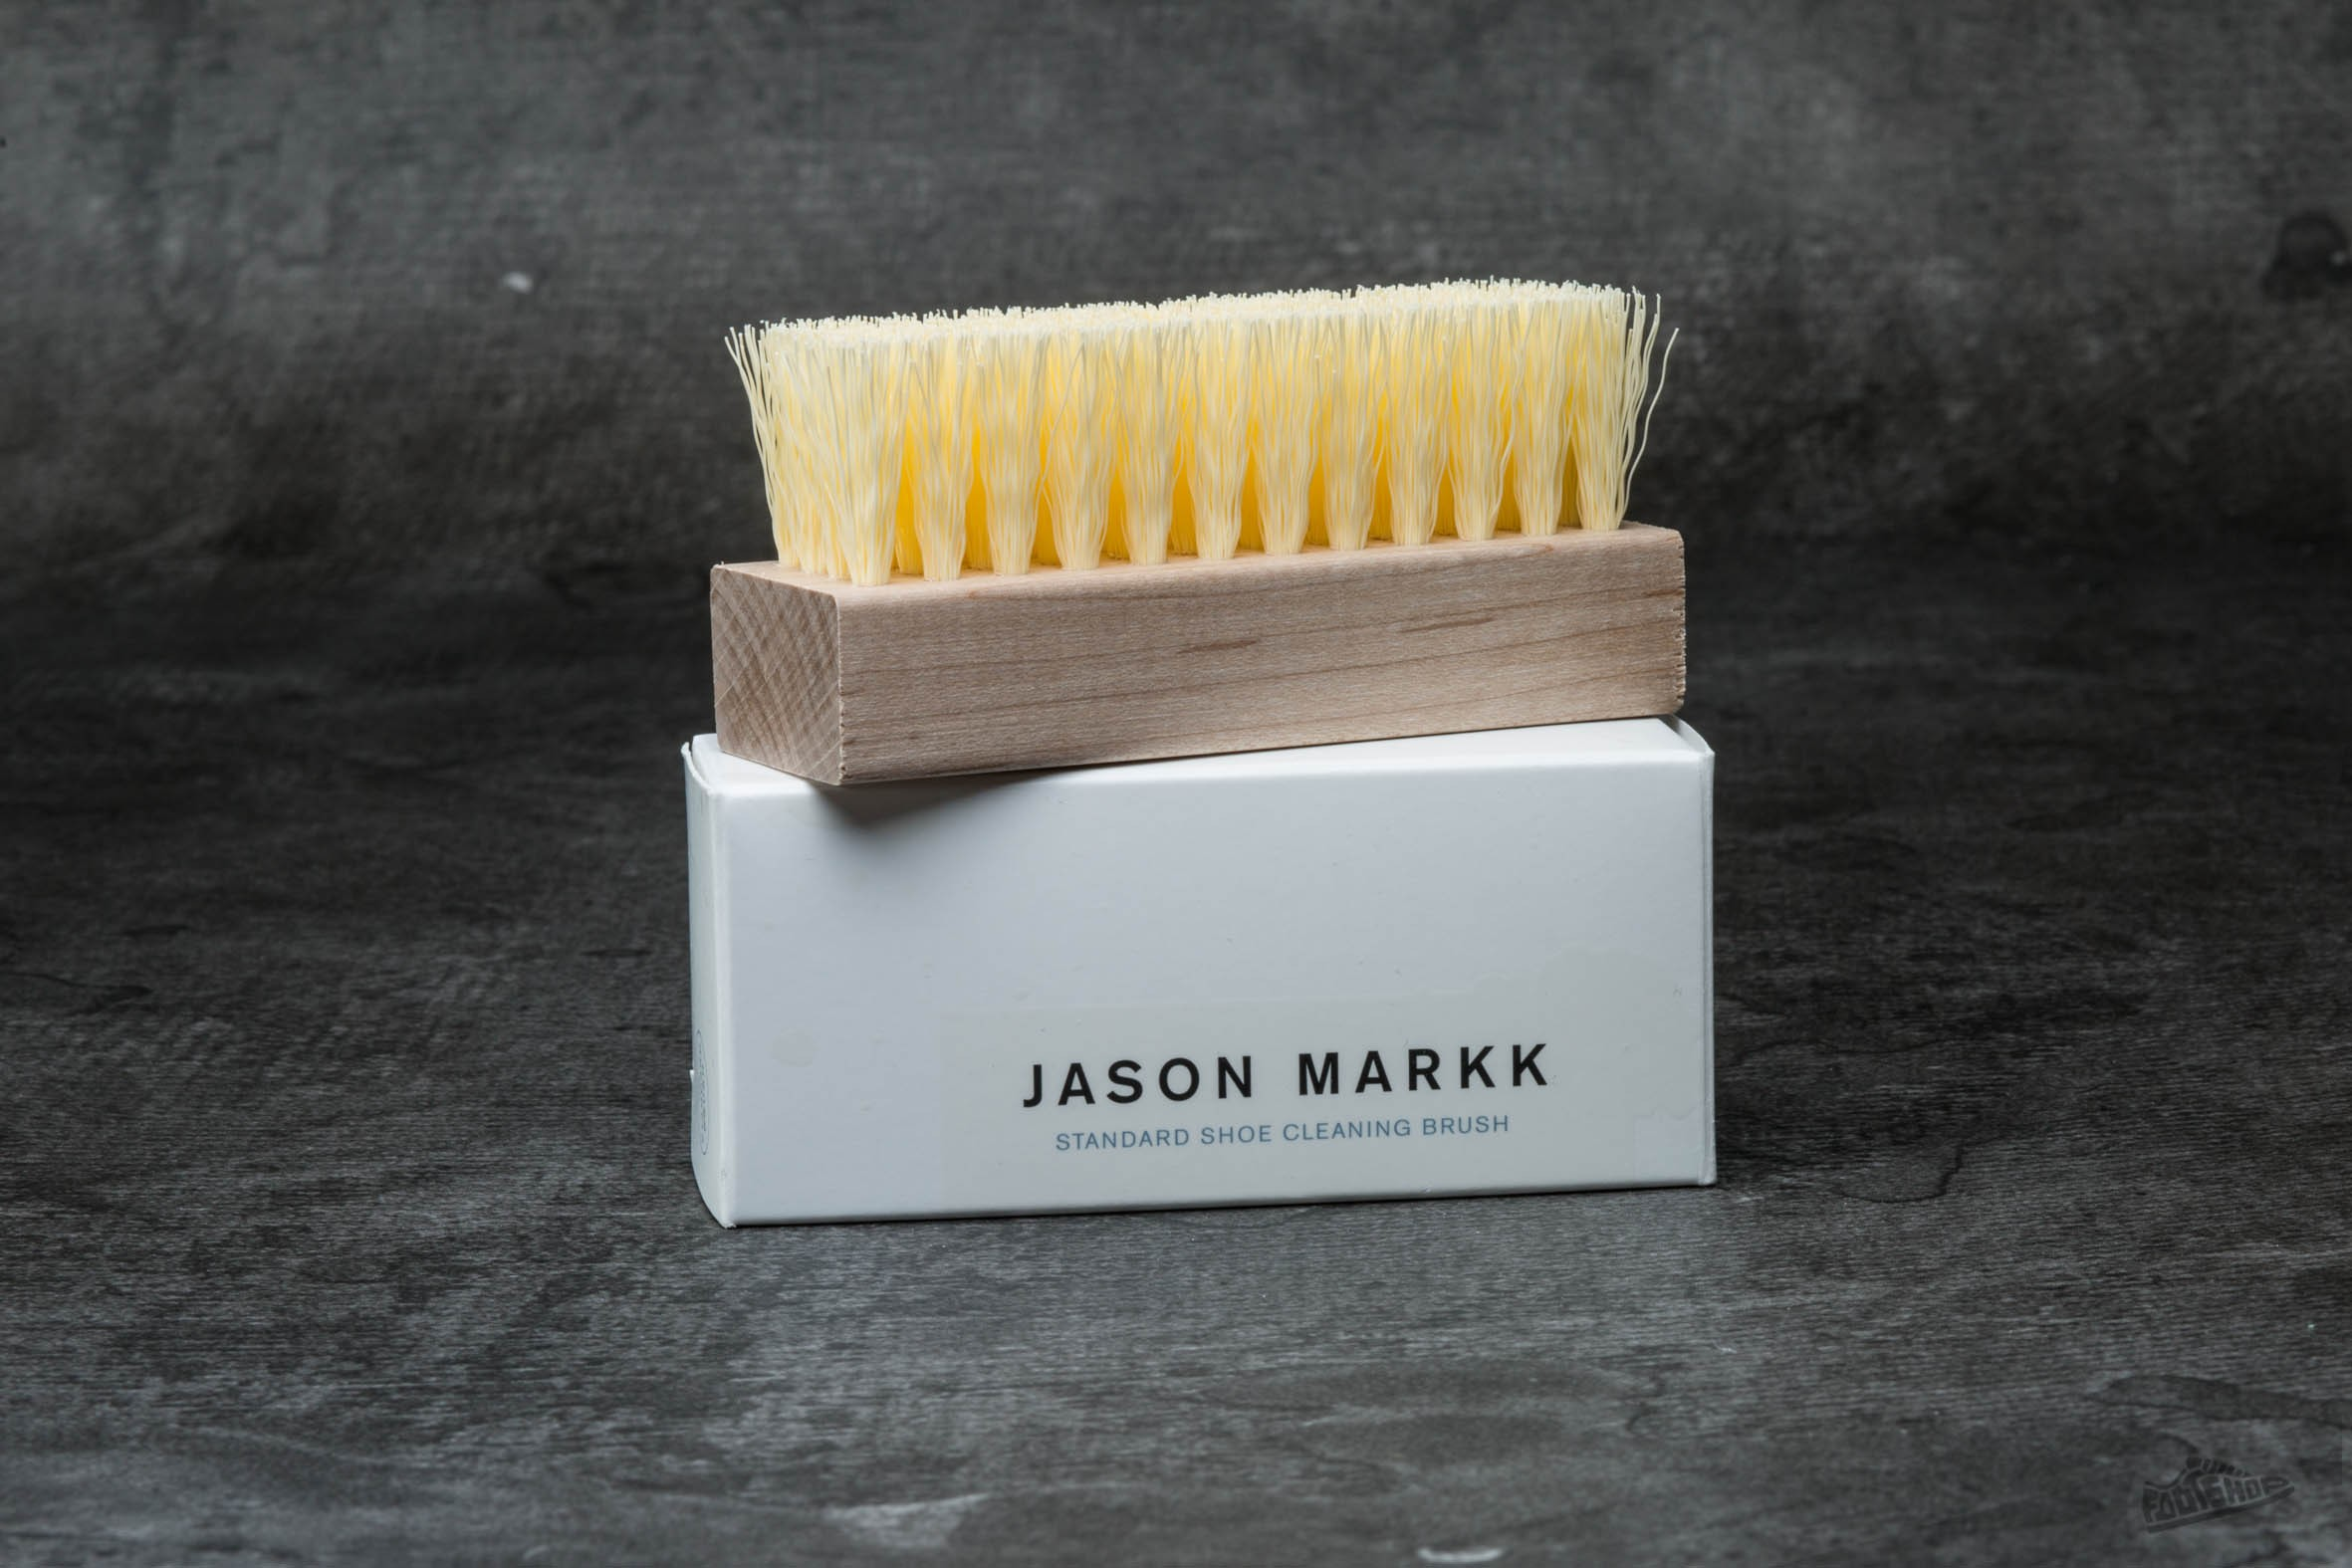 Jason Markk Standard Shoe Cleaning Brush Footshop – FR